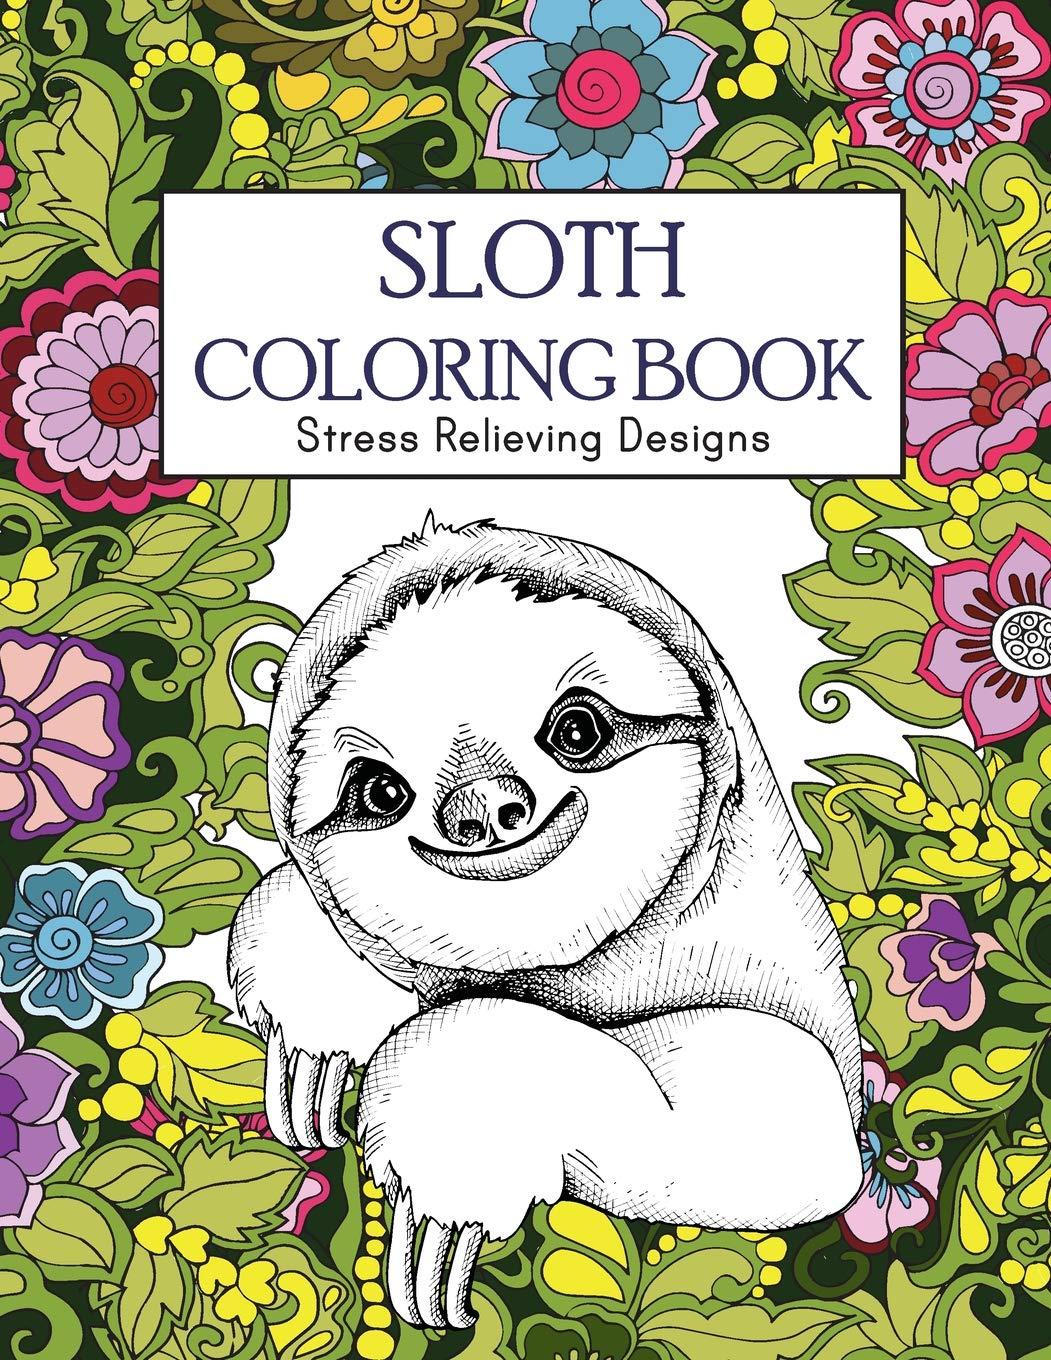 Amazon Com Sloth Coloring Book Stress Relieving Designs Sloth Coloring Book For Adults Animal Coloring Book 9781727087840 Russ Focus Books